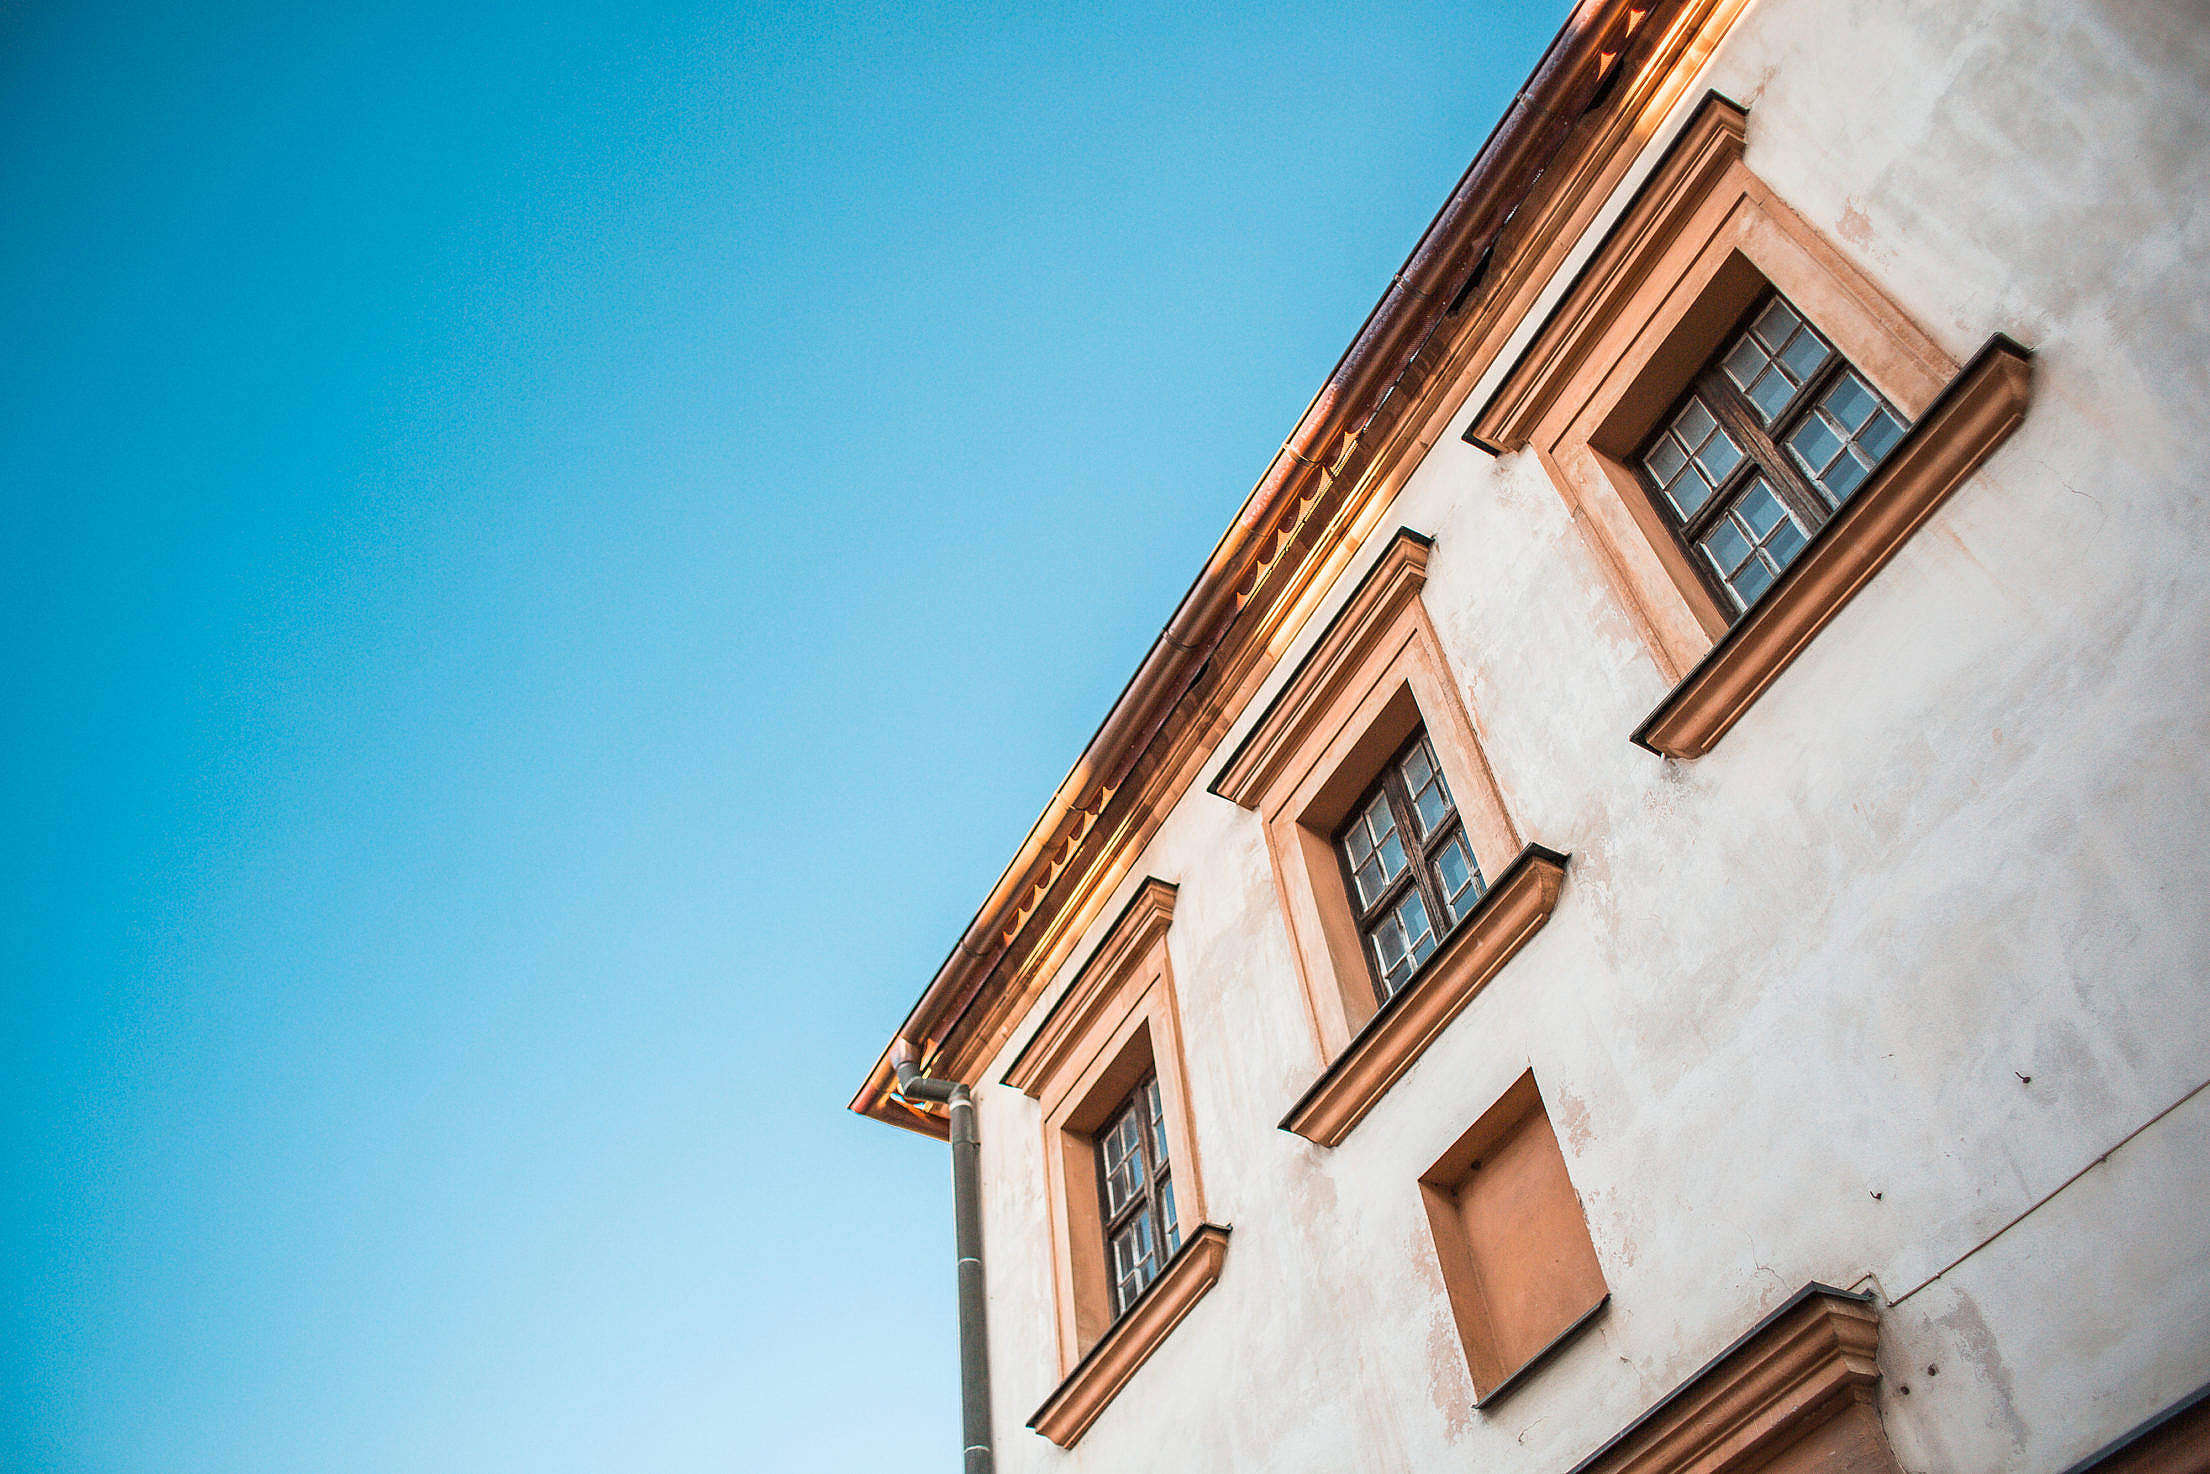 Old House and Bright Blue Sky Free Stock Photo